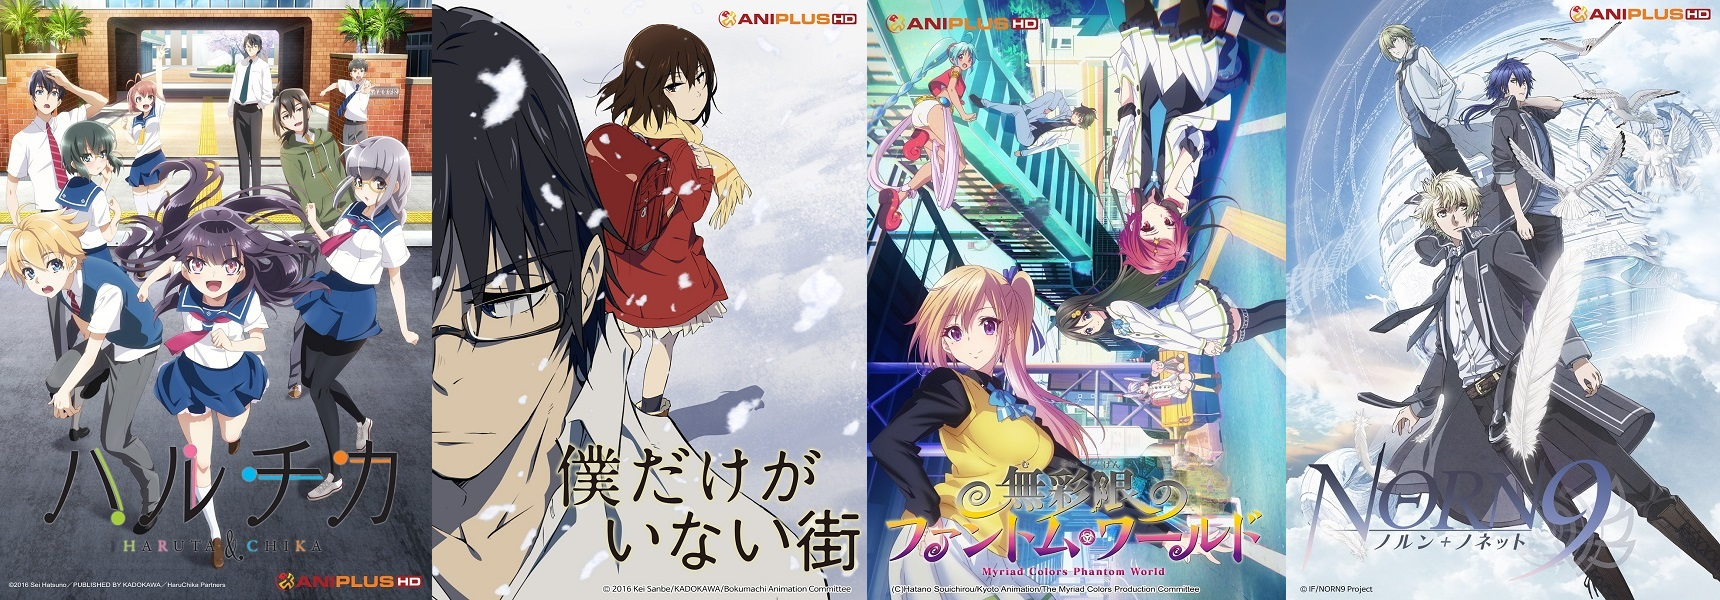 ANIPLUS January 2016 Anime Lineup